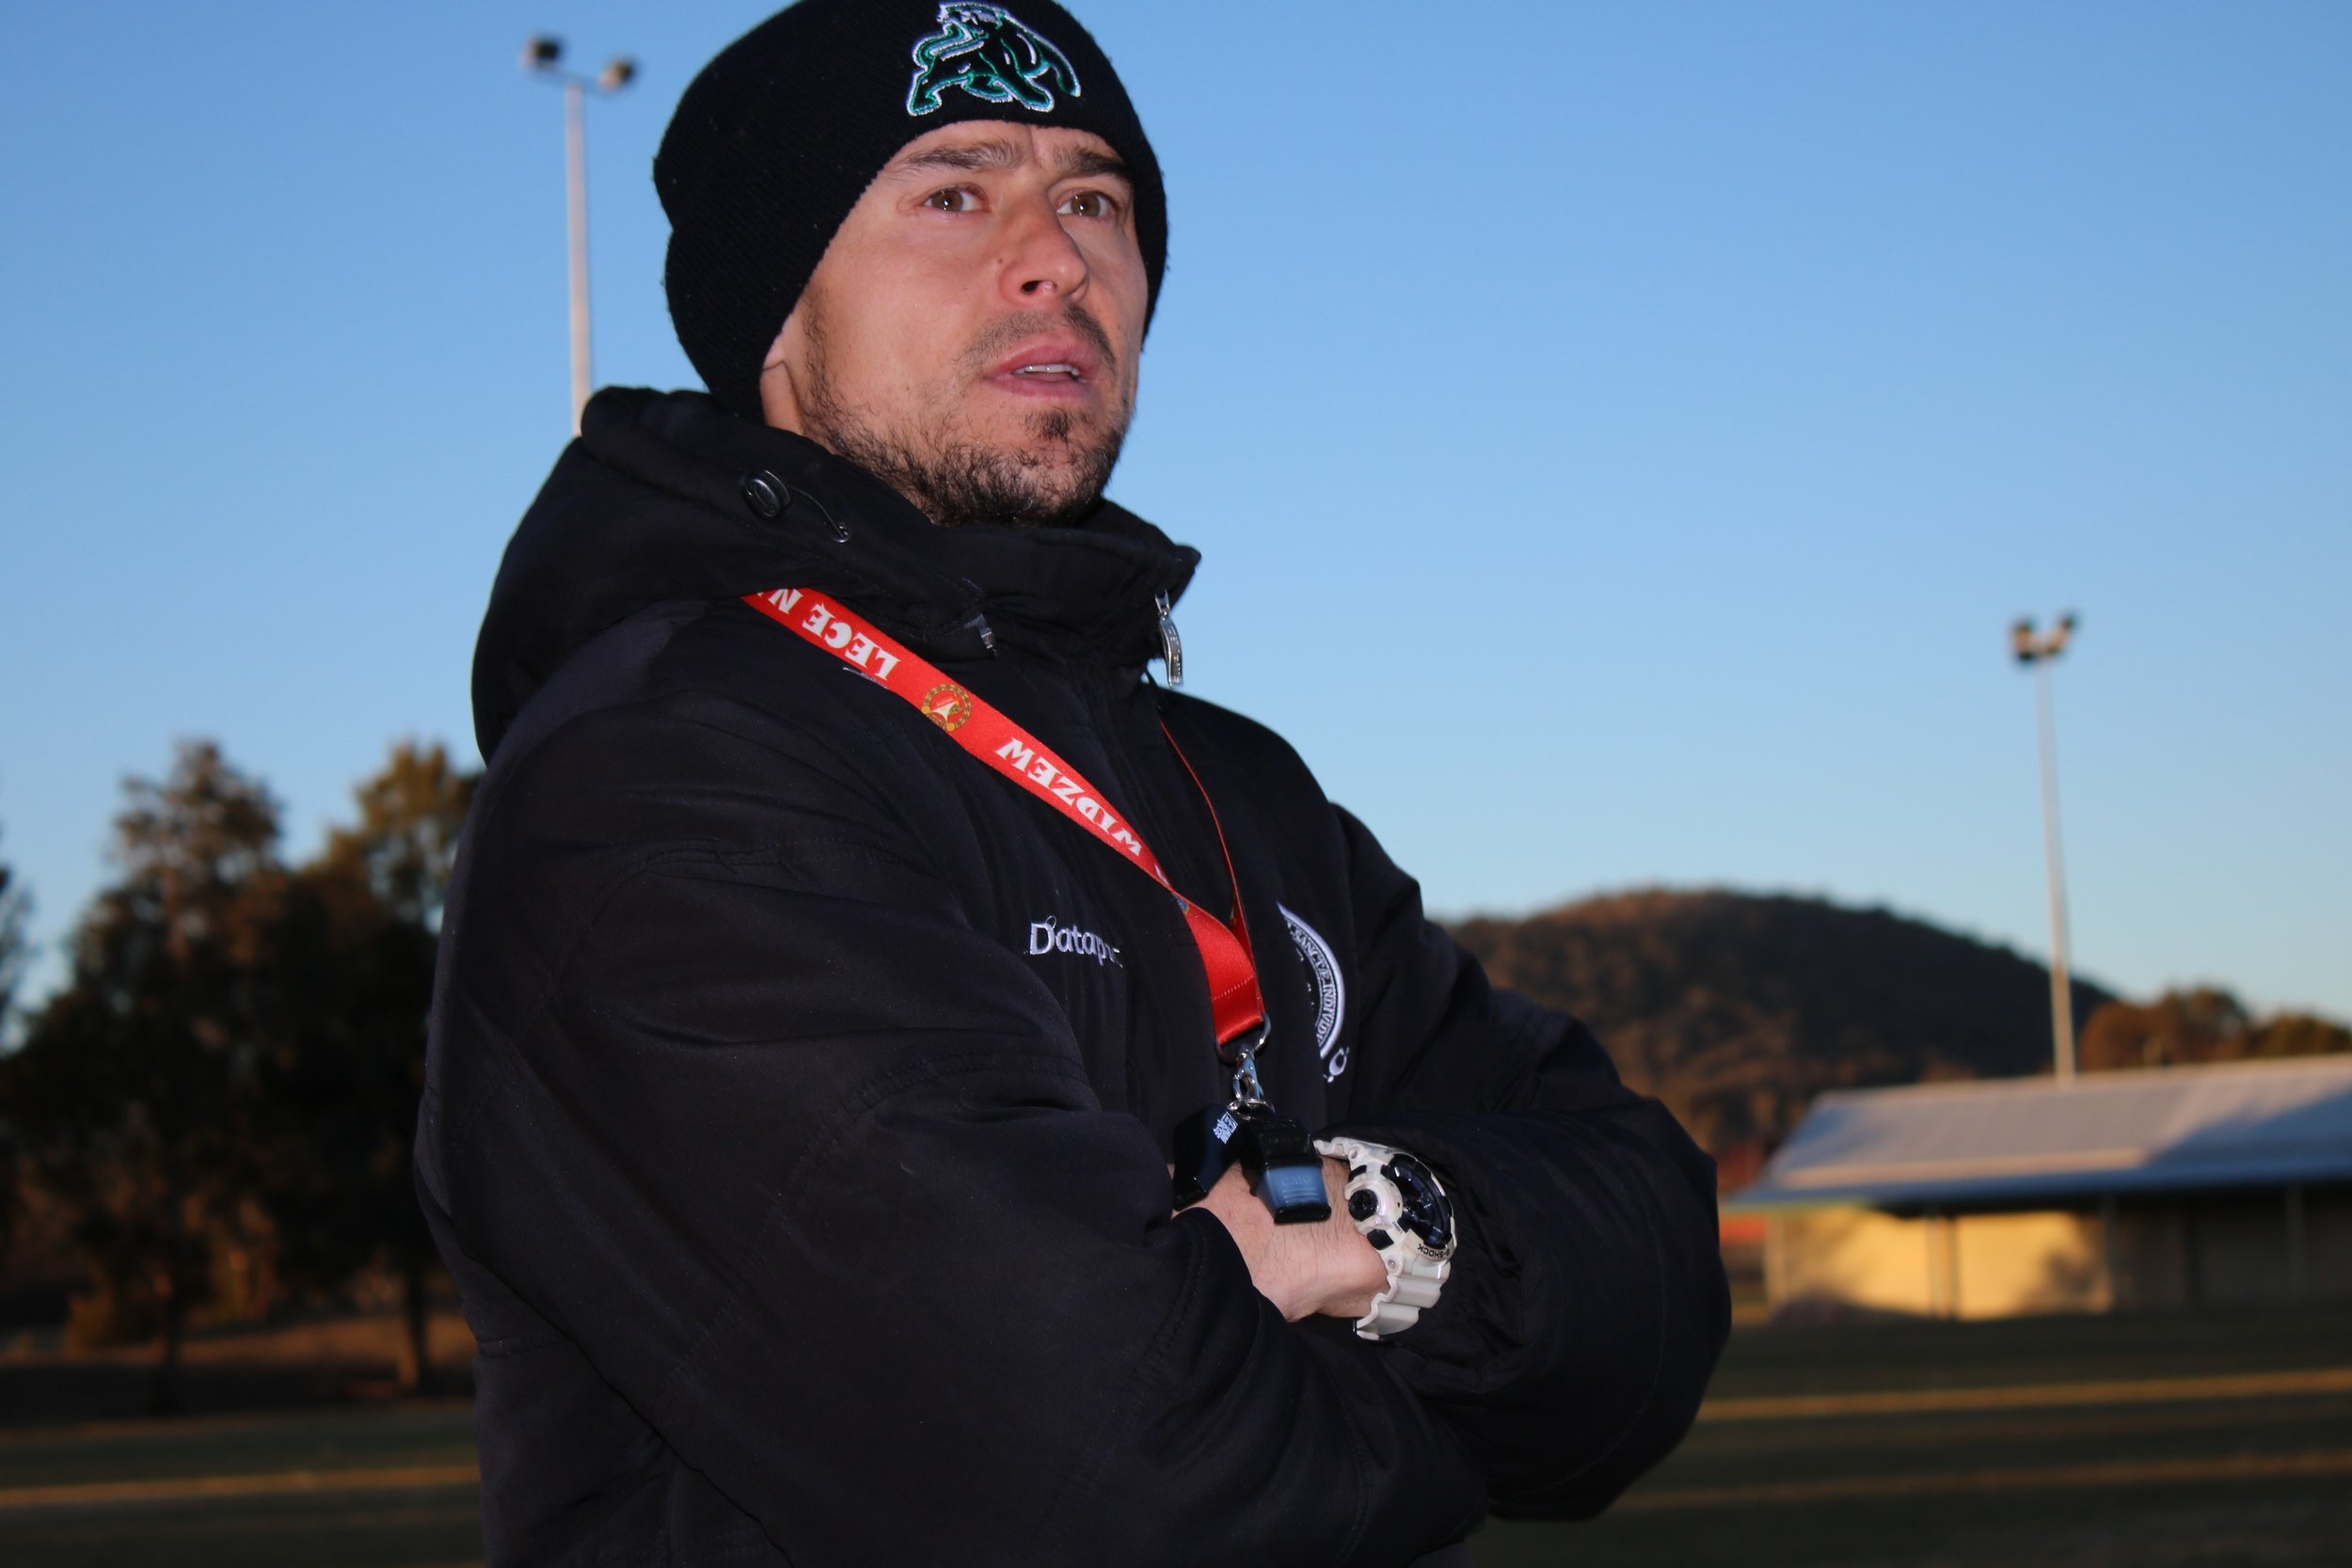 Adam Firych - Technical Director